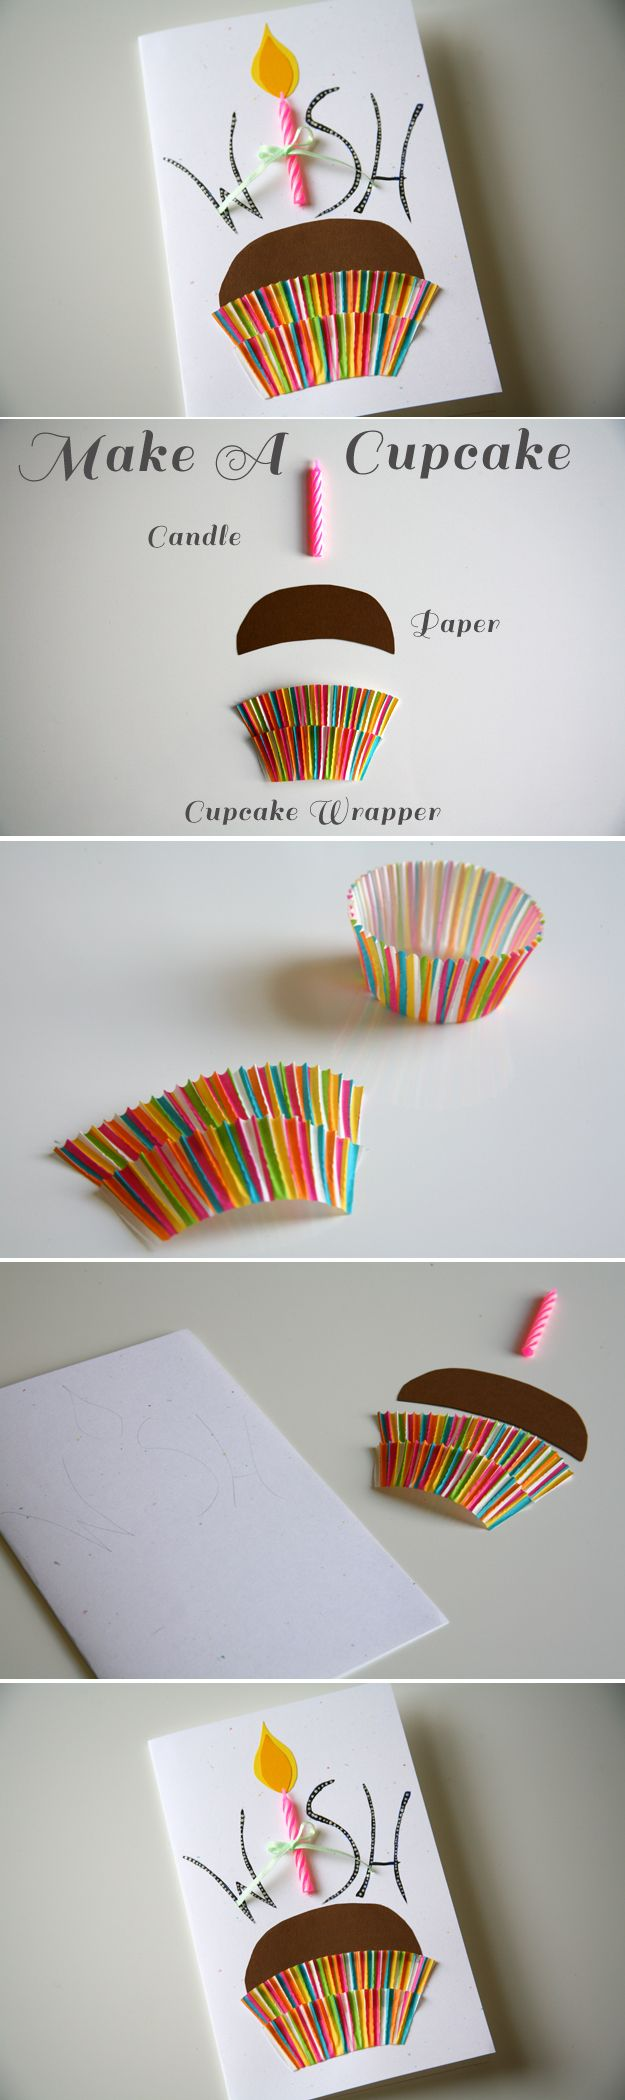 diy happy birthday cards ideas creative pinterest cumpleaños